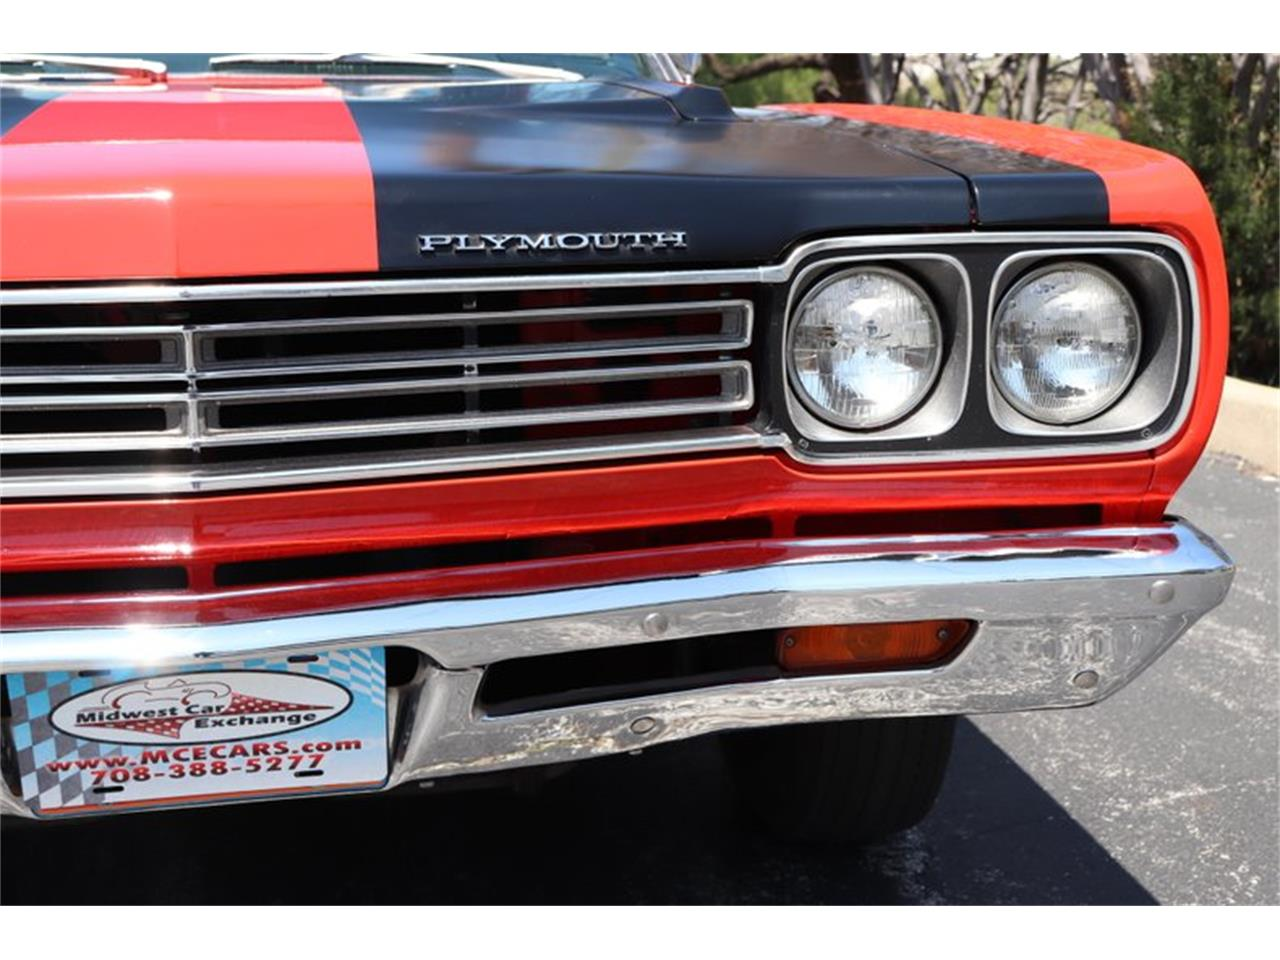 Large Picture of 1969 Plymouth Road Runner located in Illinois - $89,900.00 - NENK